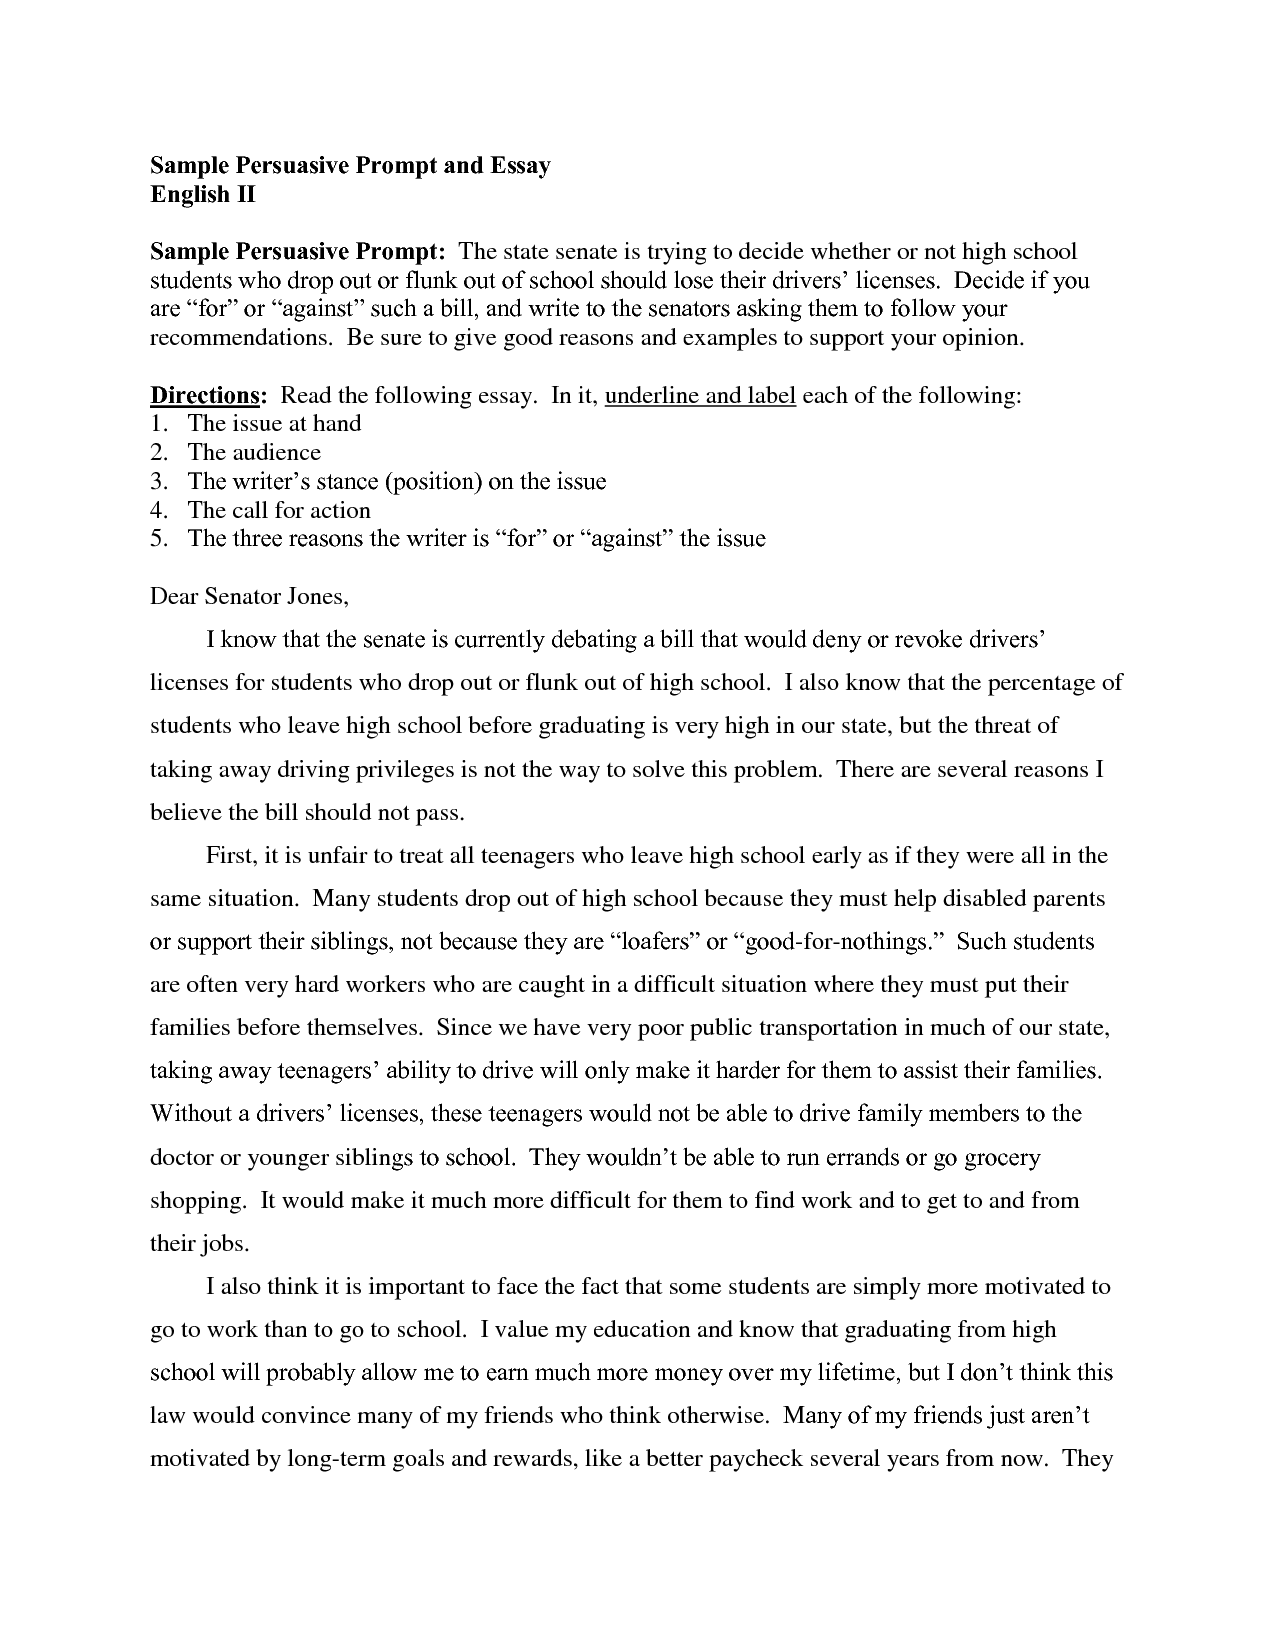 013 Research Paper Easy Topic Persuasive Essay Topics For High School Sample Ideas Highschool Students Good Prompt Funny Fun List Of Seniors Writing English Sensational Psychology History Full